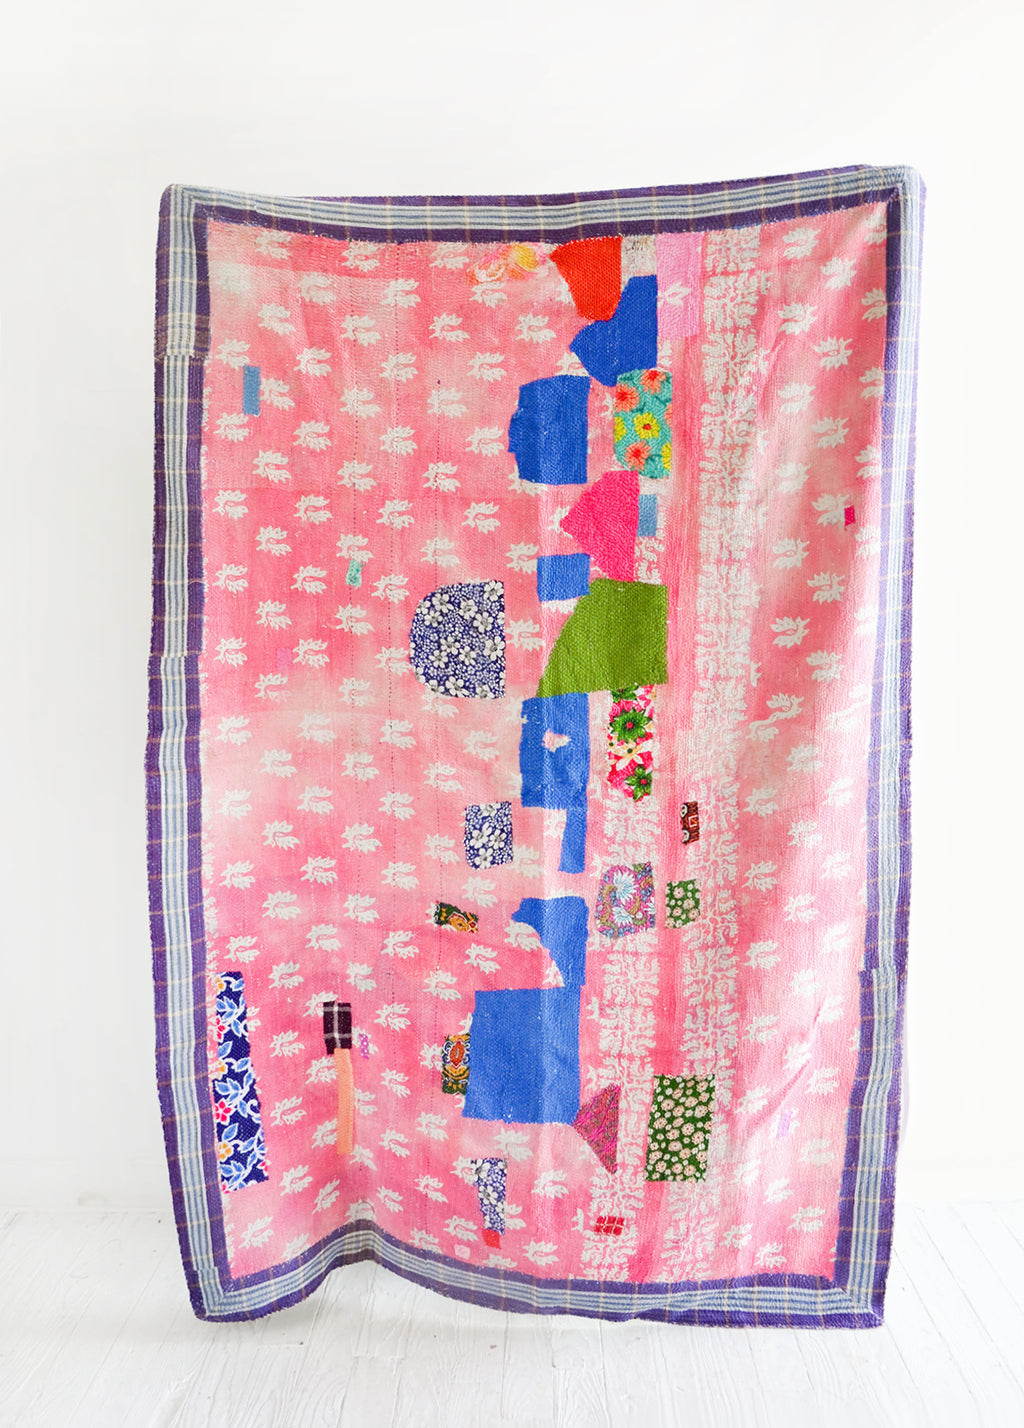 1: Vintage Patchwork Kantha Quilt in Pink Pattern with Blue Accents